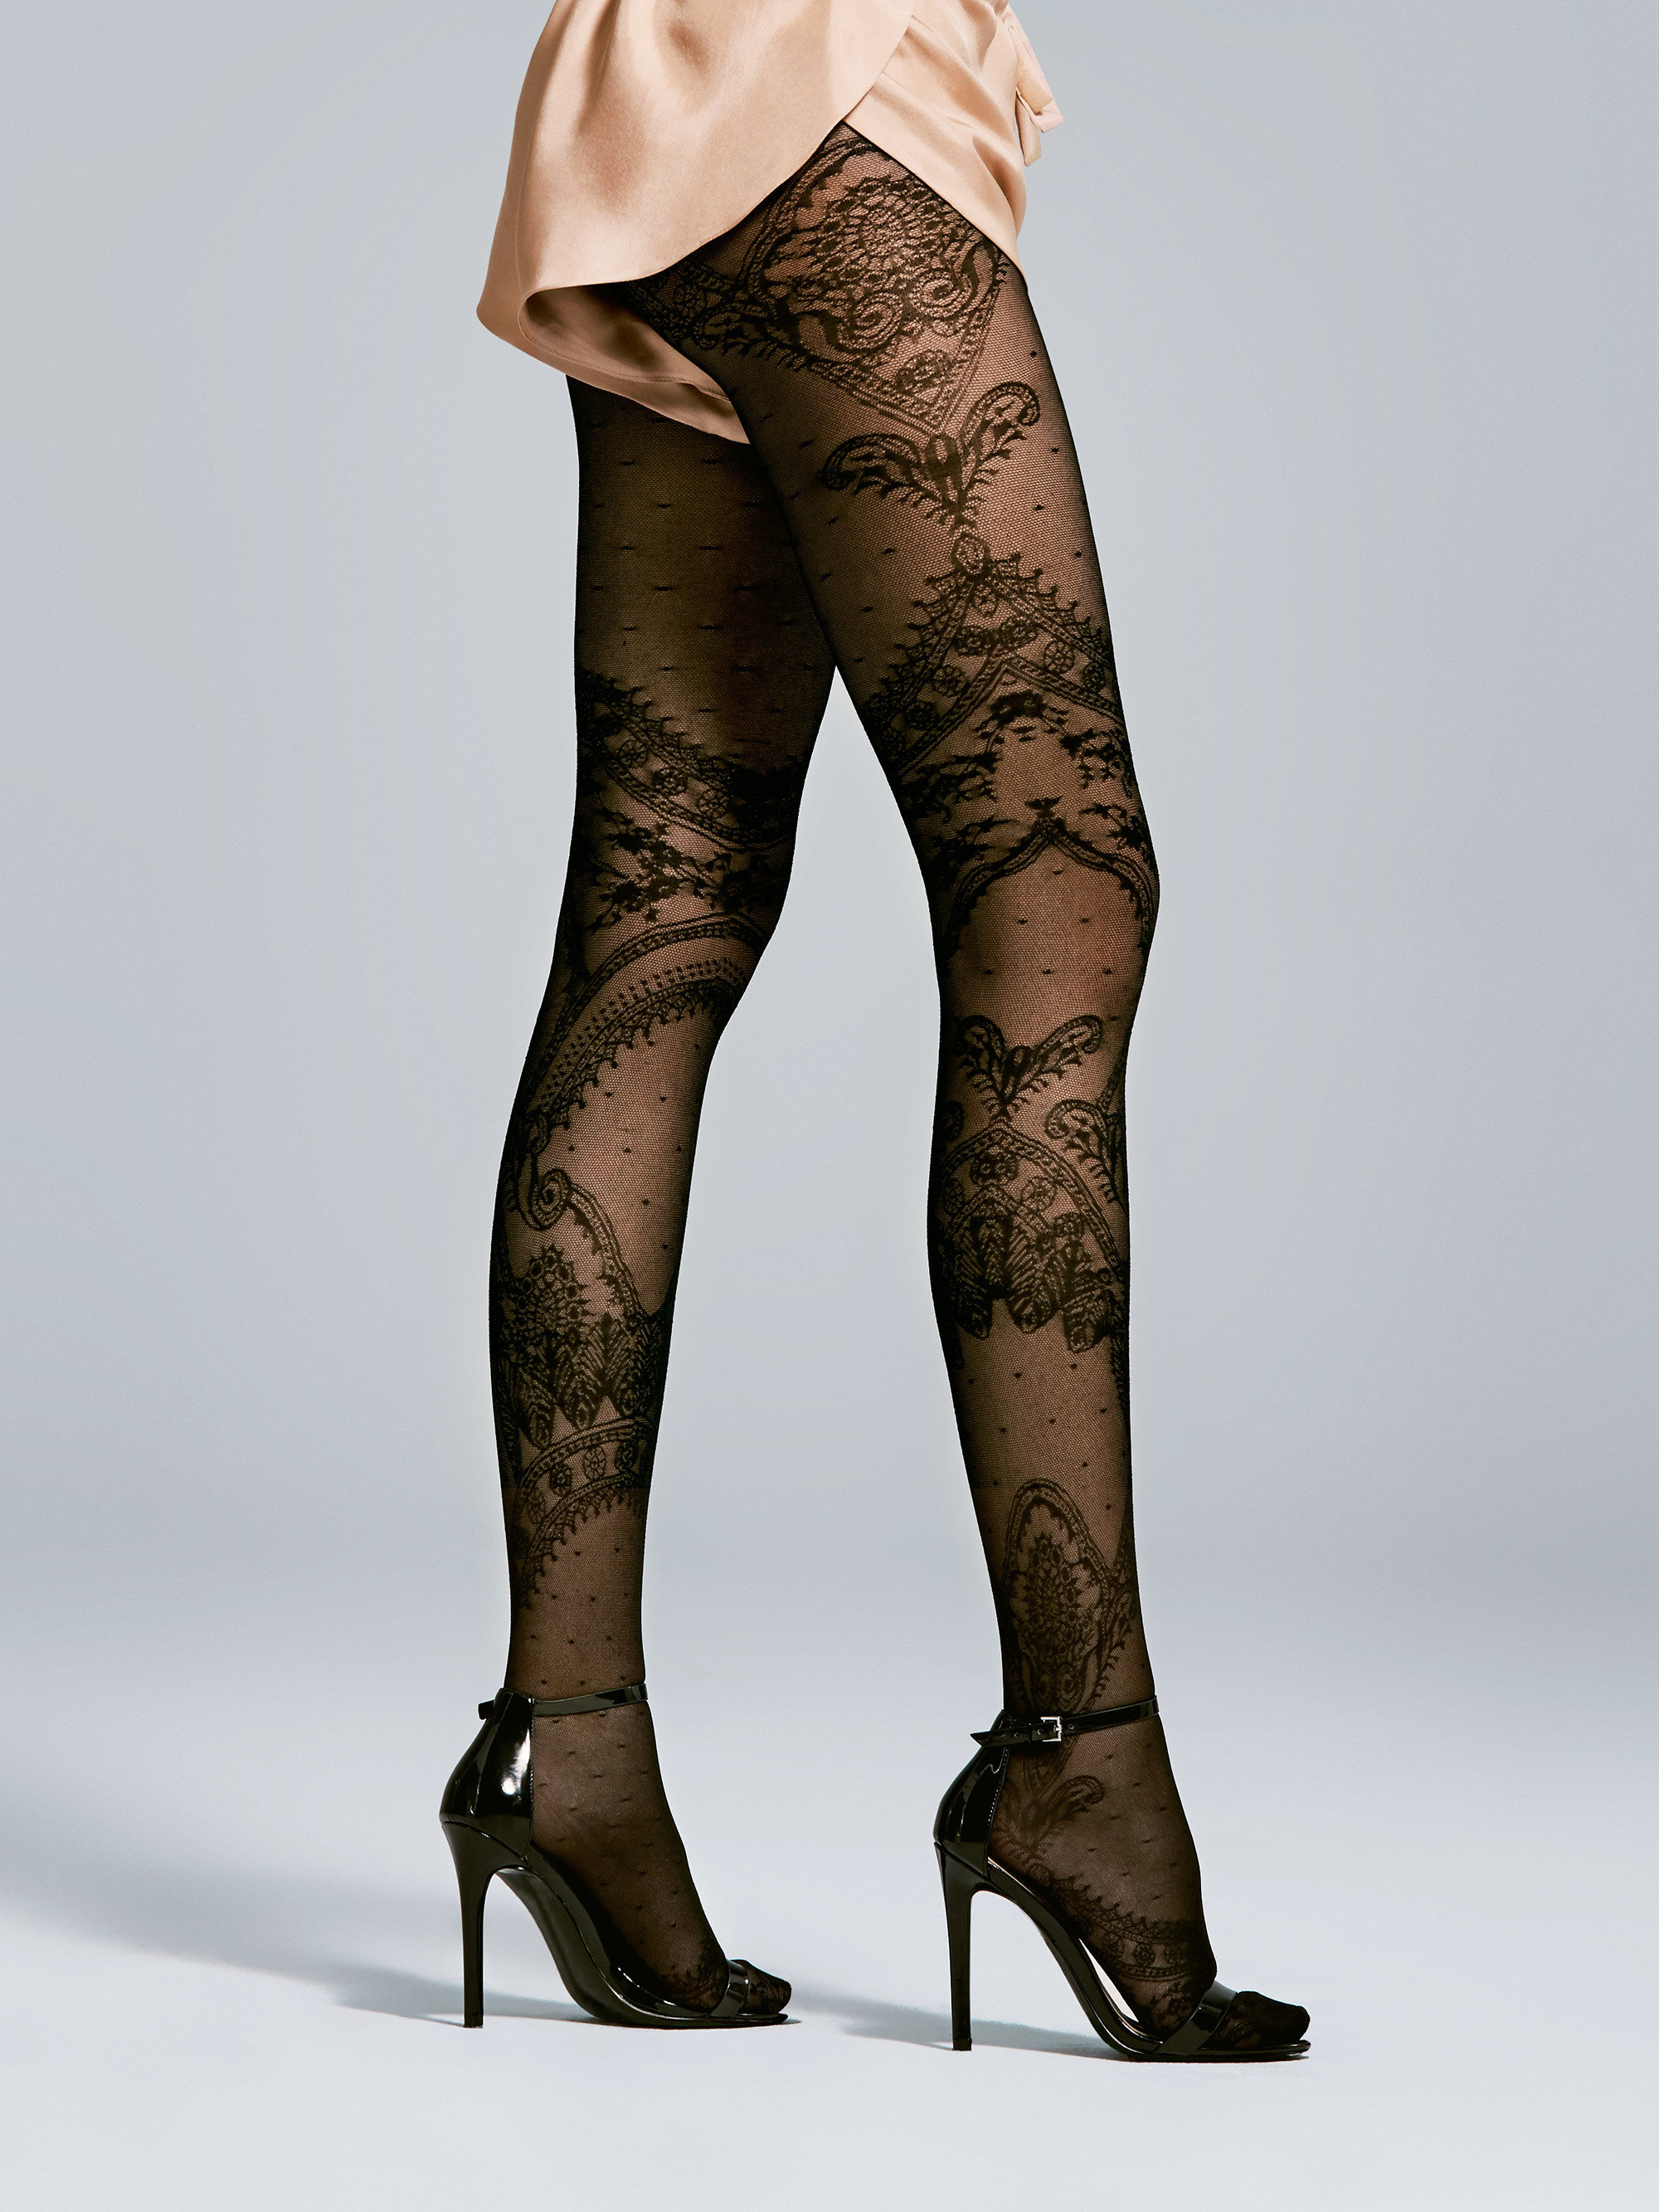 Fiore: Sexy In Paris 3D Jacquard Patterned Tights SOLD OUT